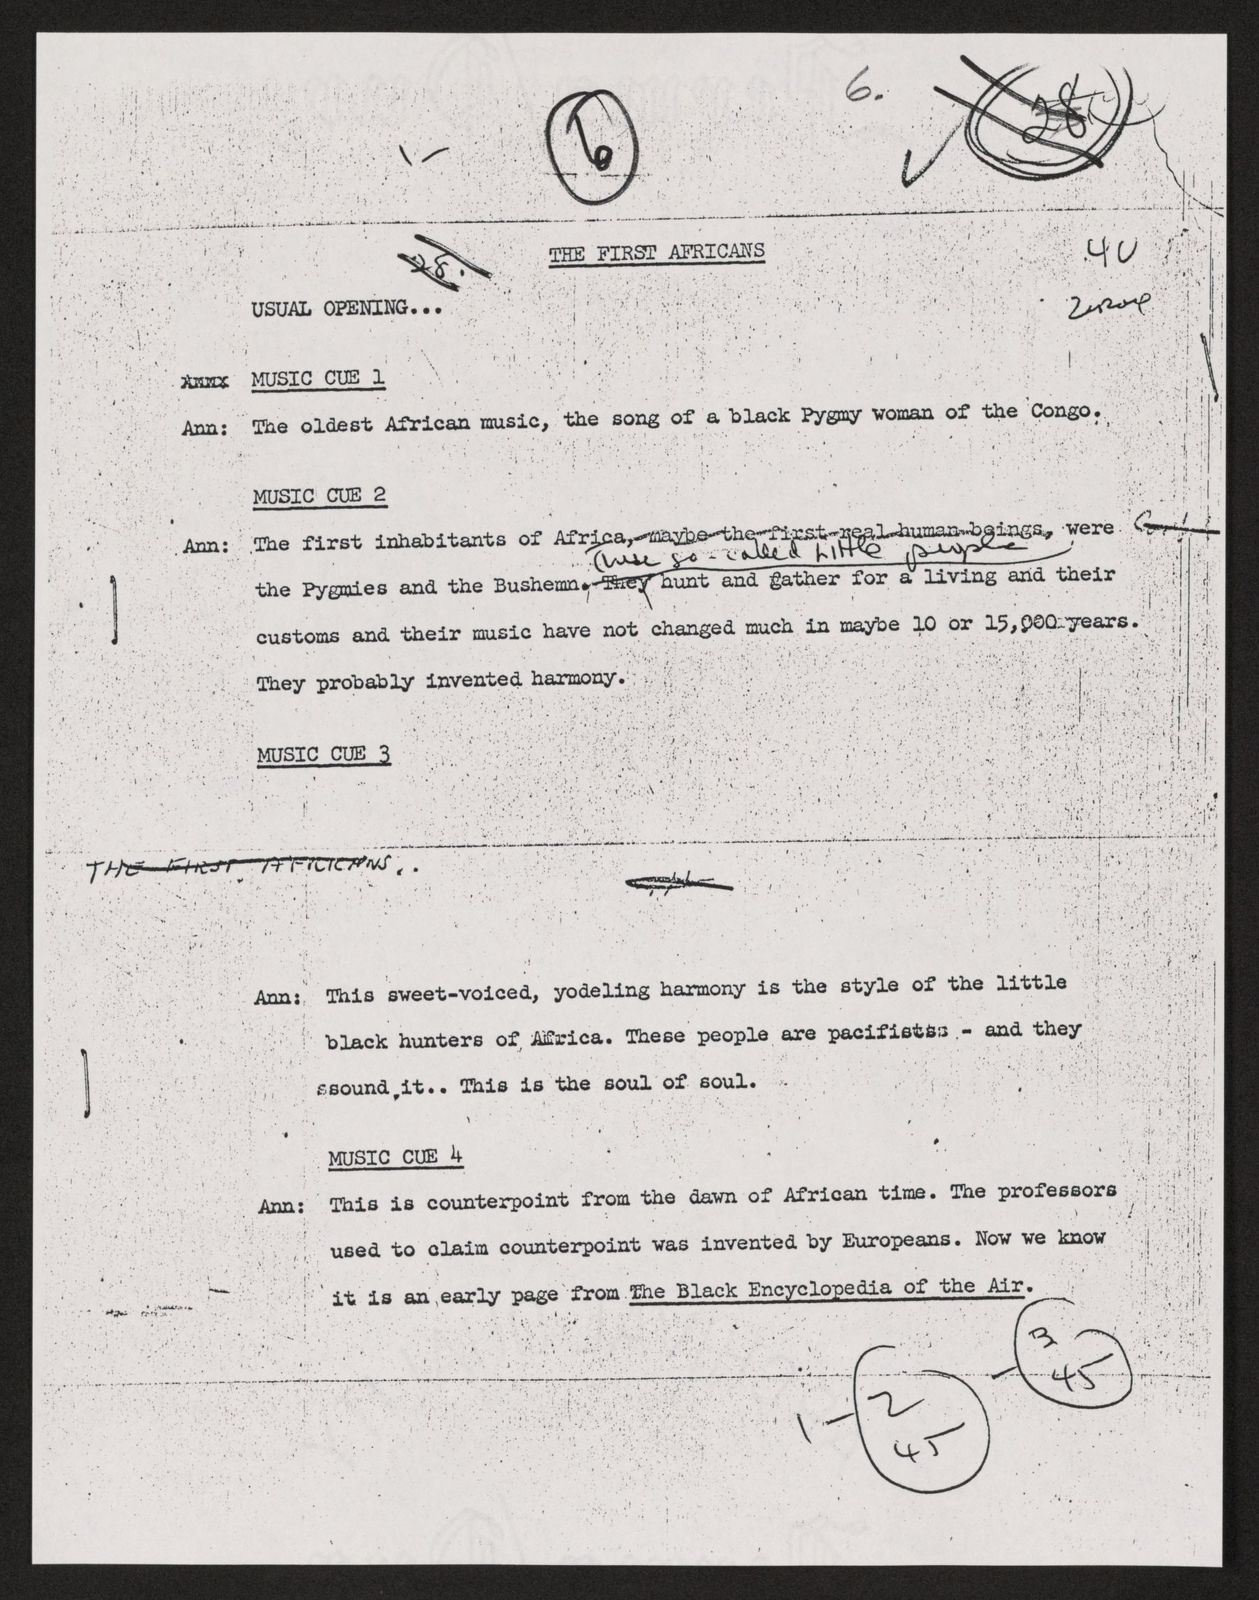 Alan Lomax Collection, Manuscripts, Black Identity Project, 1968-1970, Black Encyclopedia of the Air, 1968-1969